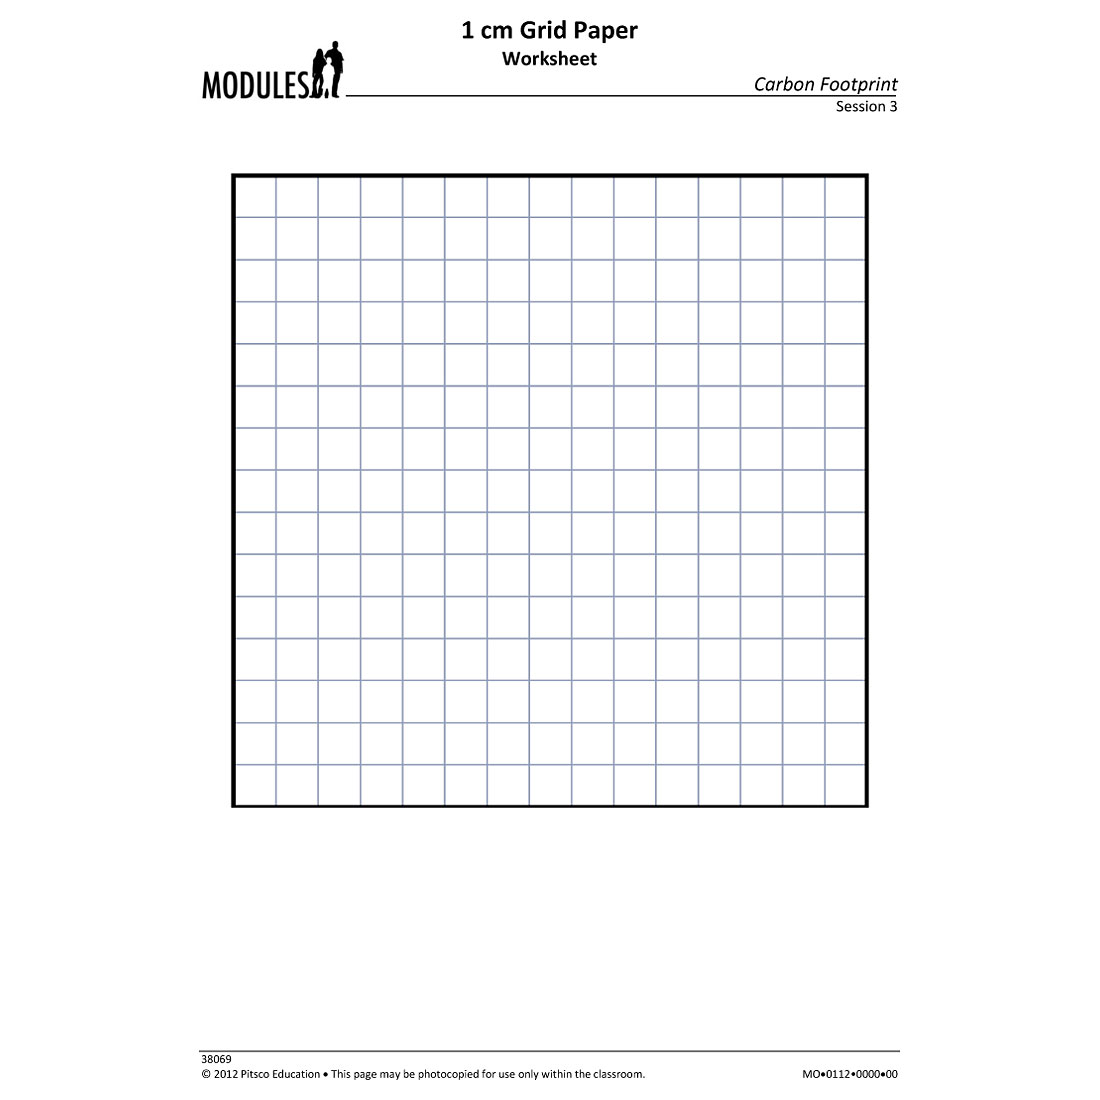 worksheet Grid Worksheets grid worksheets free library download and print color elleapp